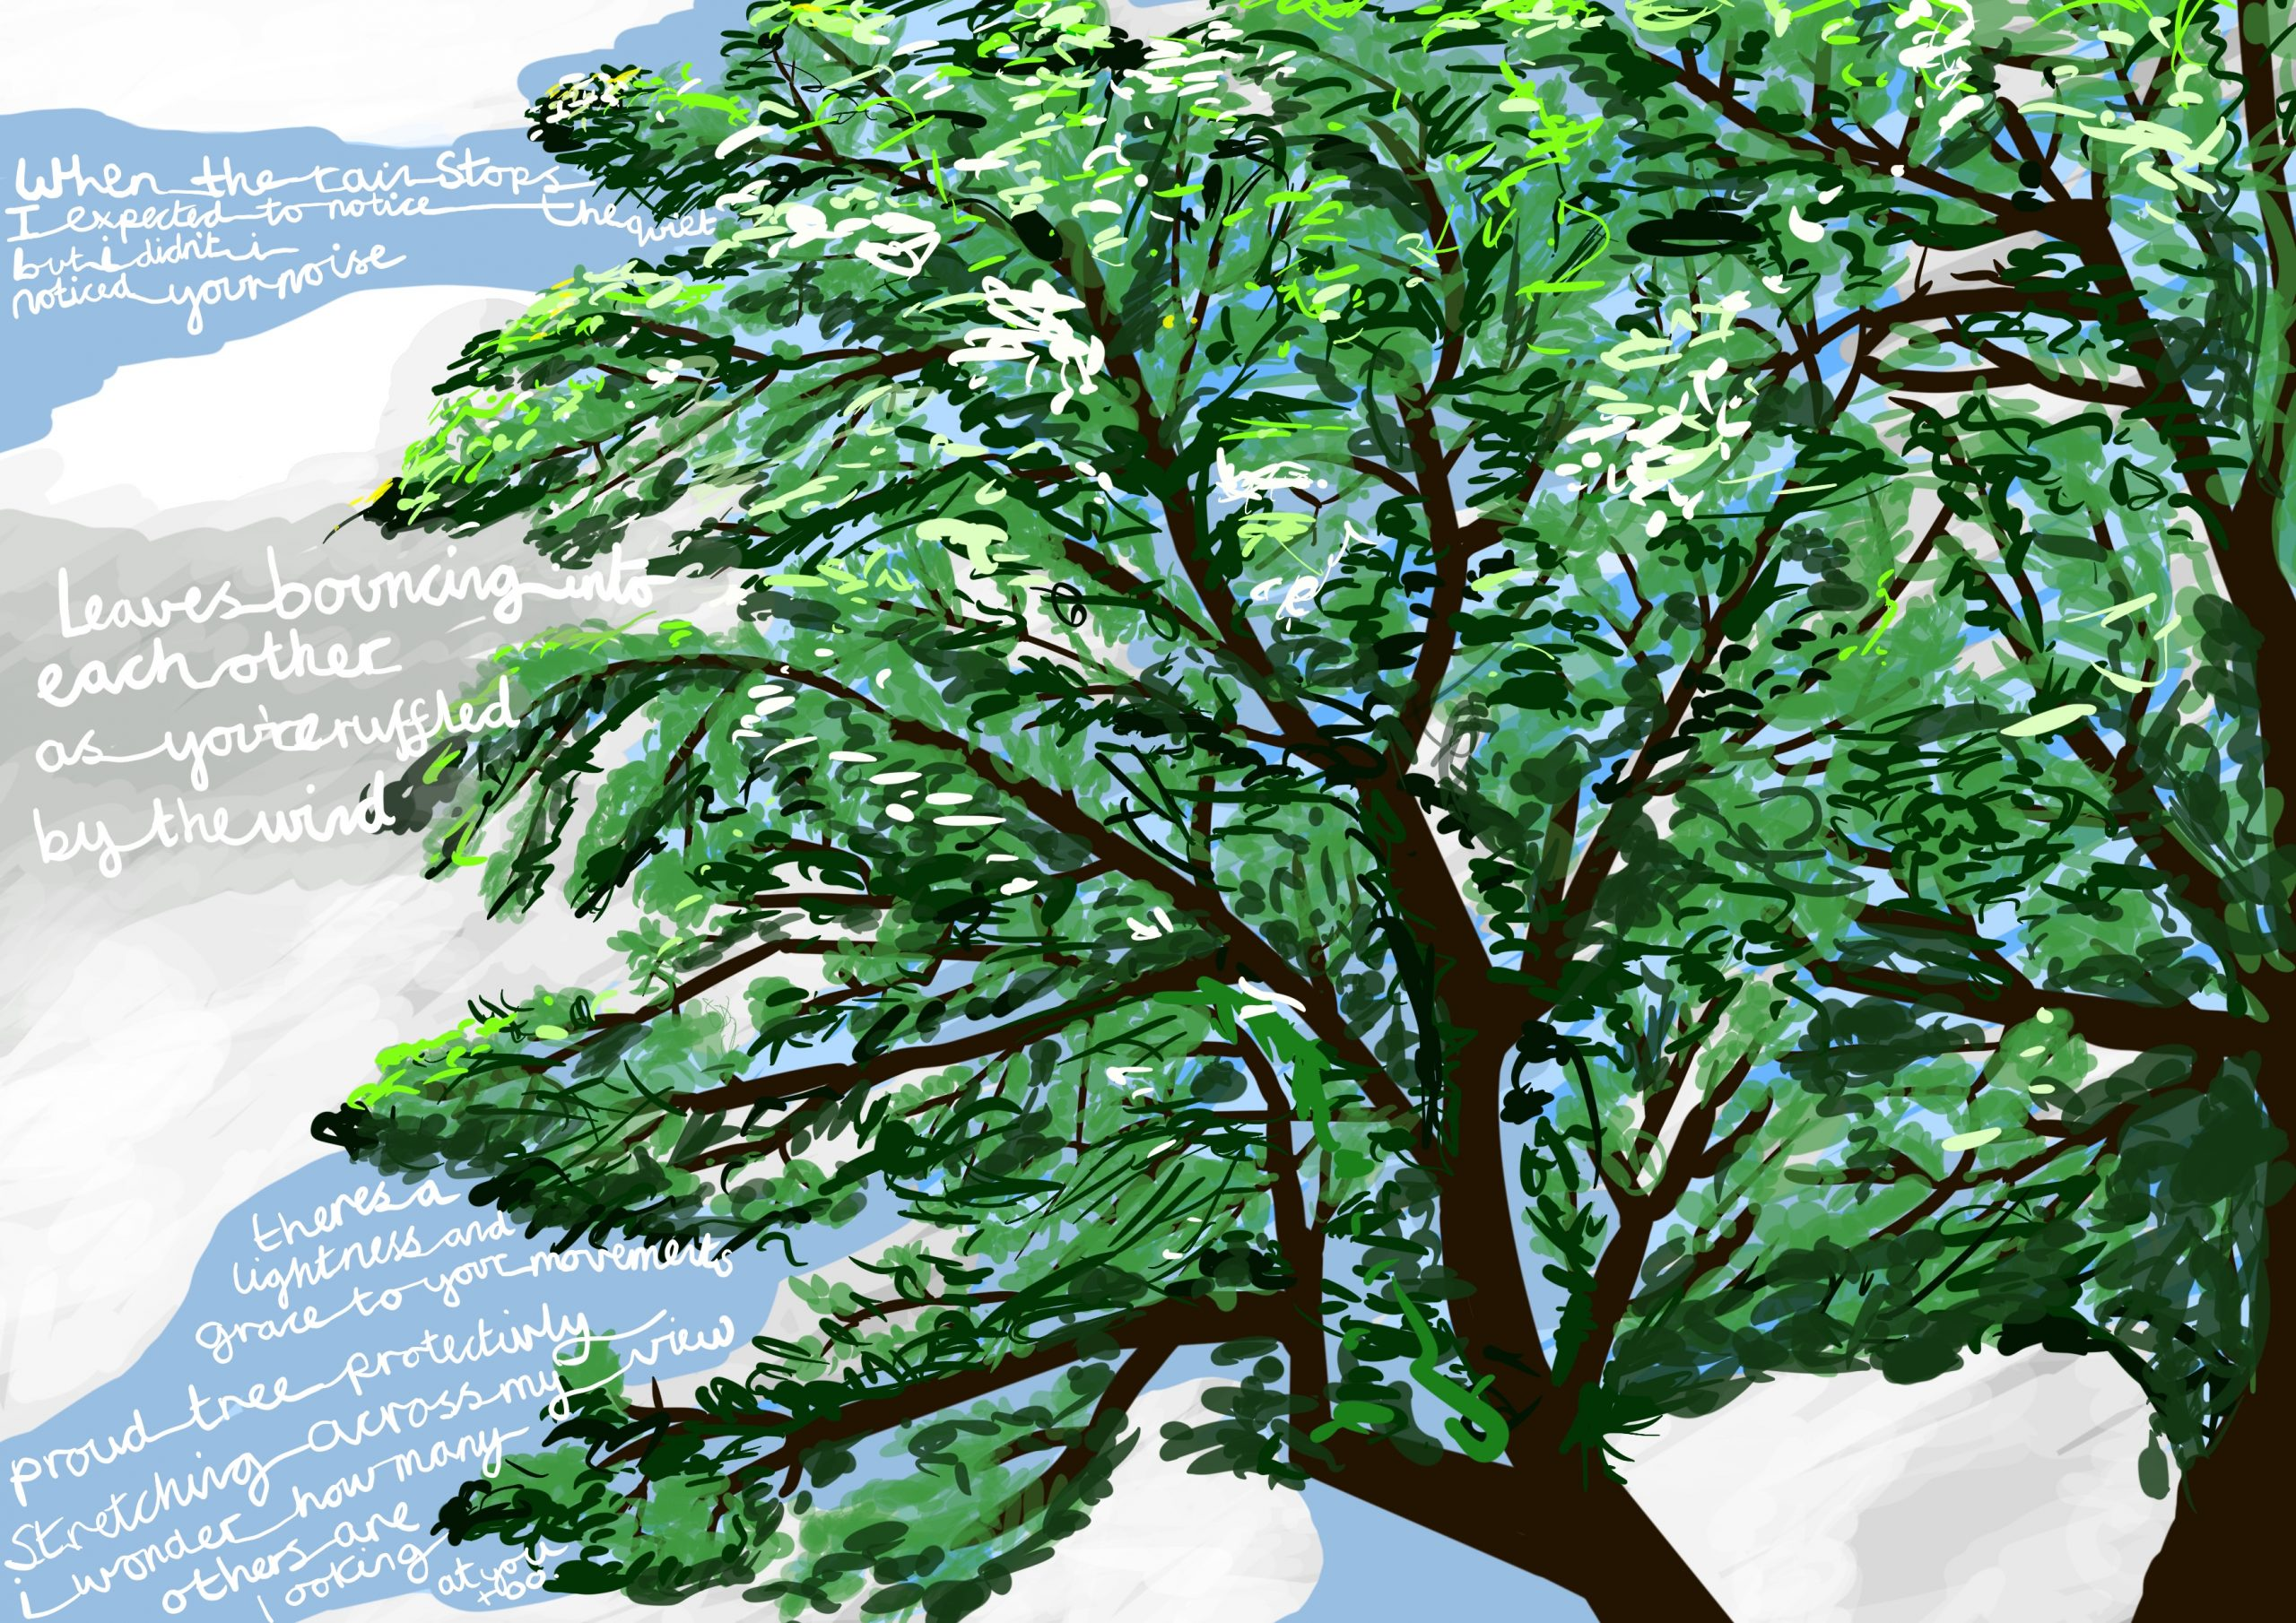 "Image shows a digital drawing by Touretteshero of one of the sycamore trees she can see from her bedroom window. The sycamore tree is a lush early summer green and the sky is cloudy with patches of blue. It is raining heavily with the following accompanying text: ""When the rain stops, I expected to notice the quiet, but I didn't, I noticed your noise. Leaves bouncing off each other as you're ruffled by the wind."""